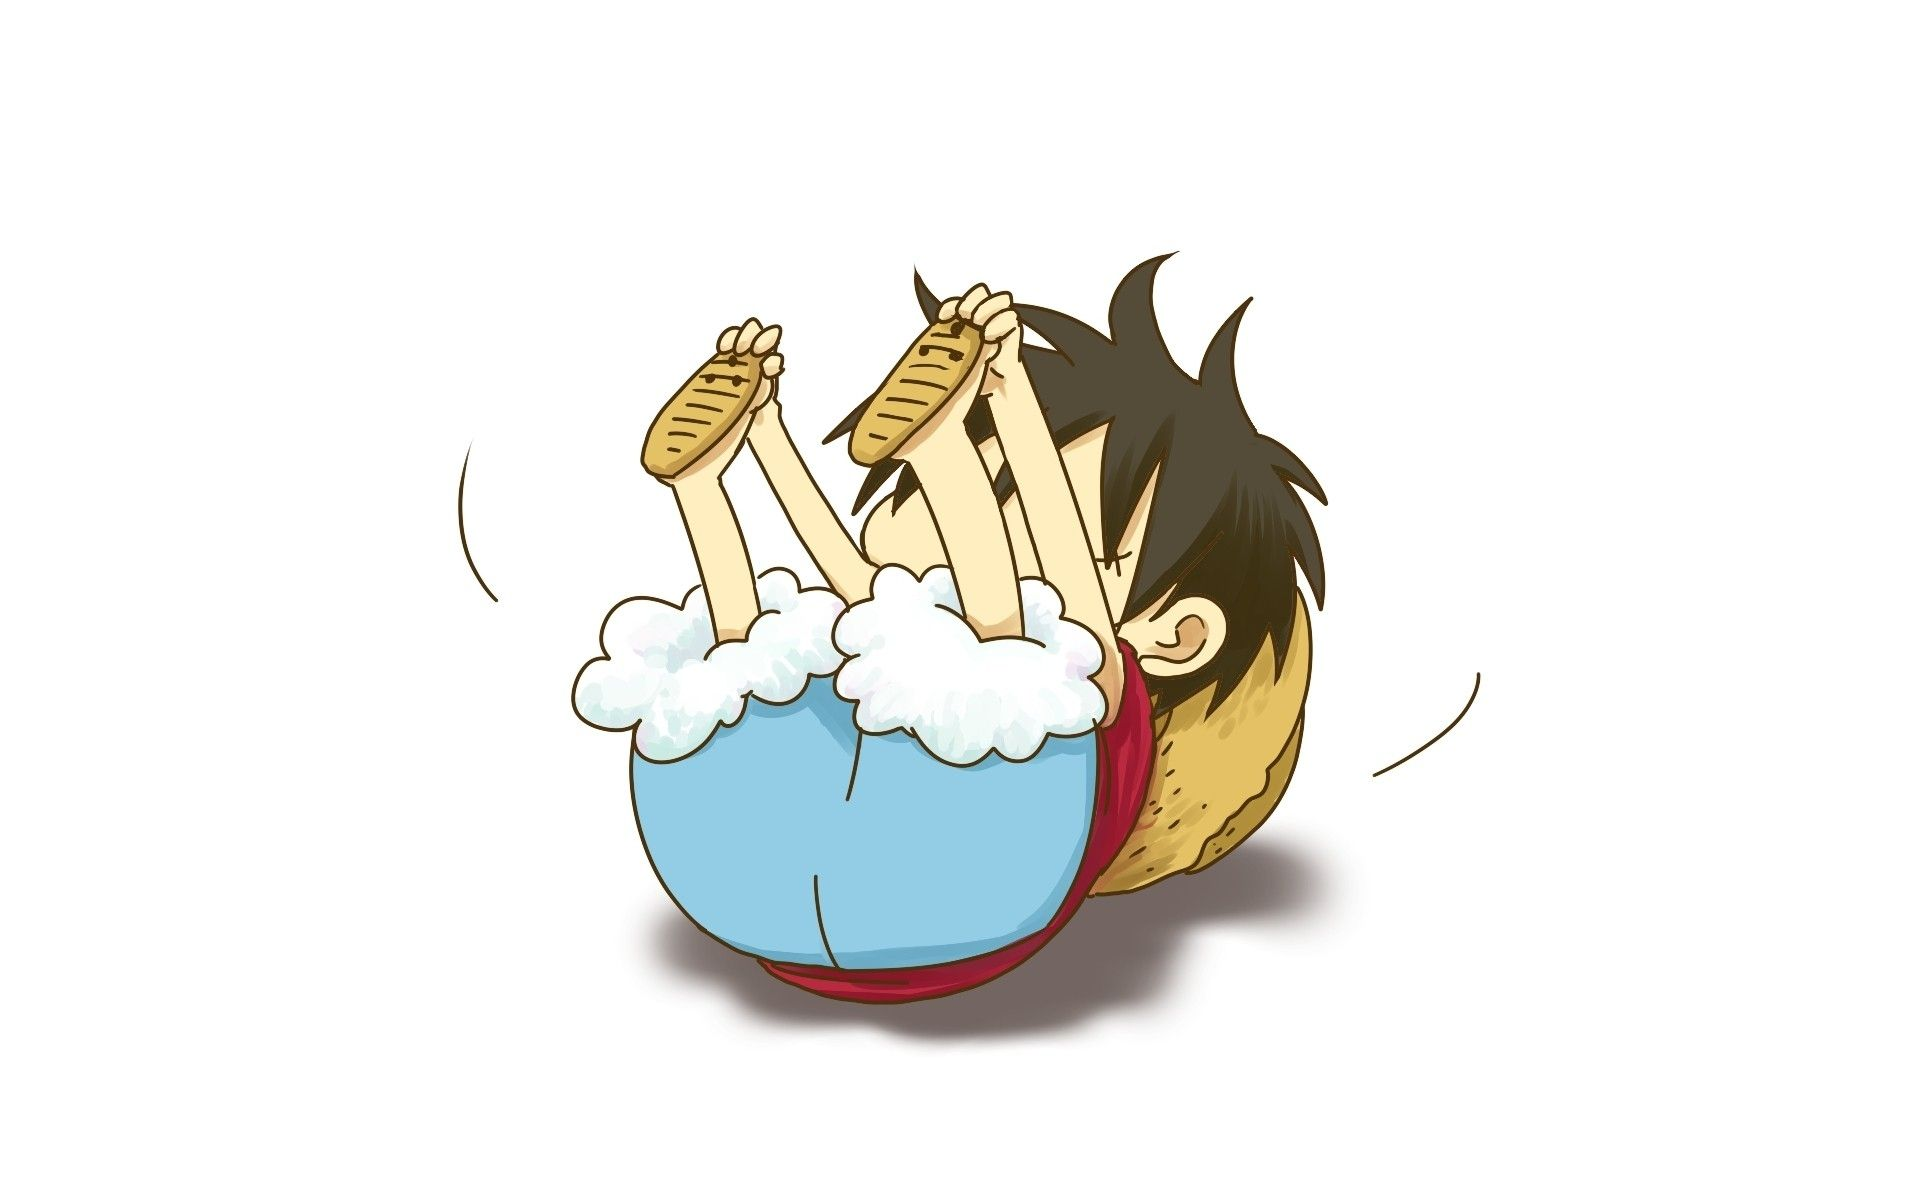 One Piece Chibi Wallpapers Top Free One Piece Chibi Backgrounds Wallpaperaccess